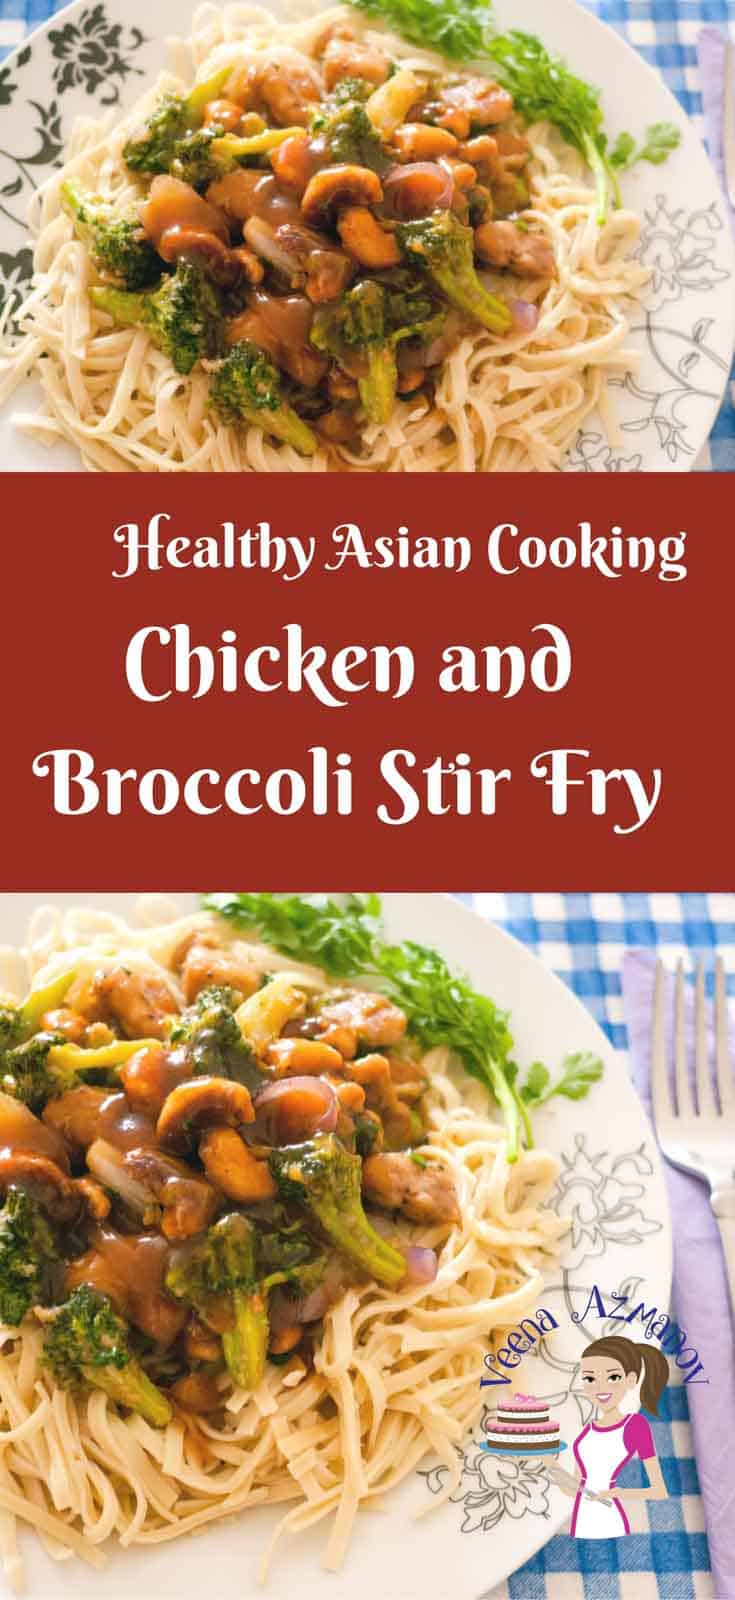 Chicken and Broccoli stir fry is a simple, quick and healthy meal option to get dinner in 15 minutes on busy days. If you use frozen veggies you prep time is down to almost nothing. How convenient in that?